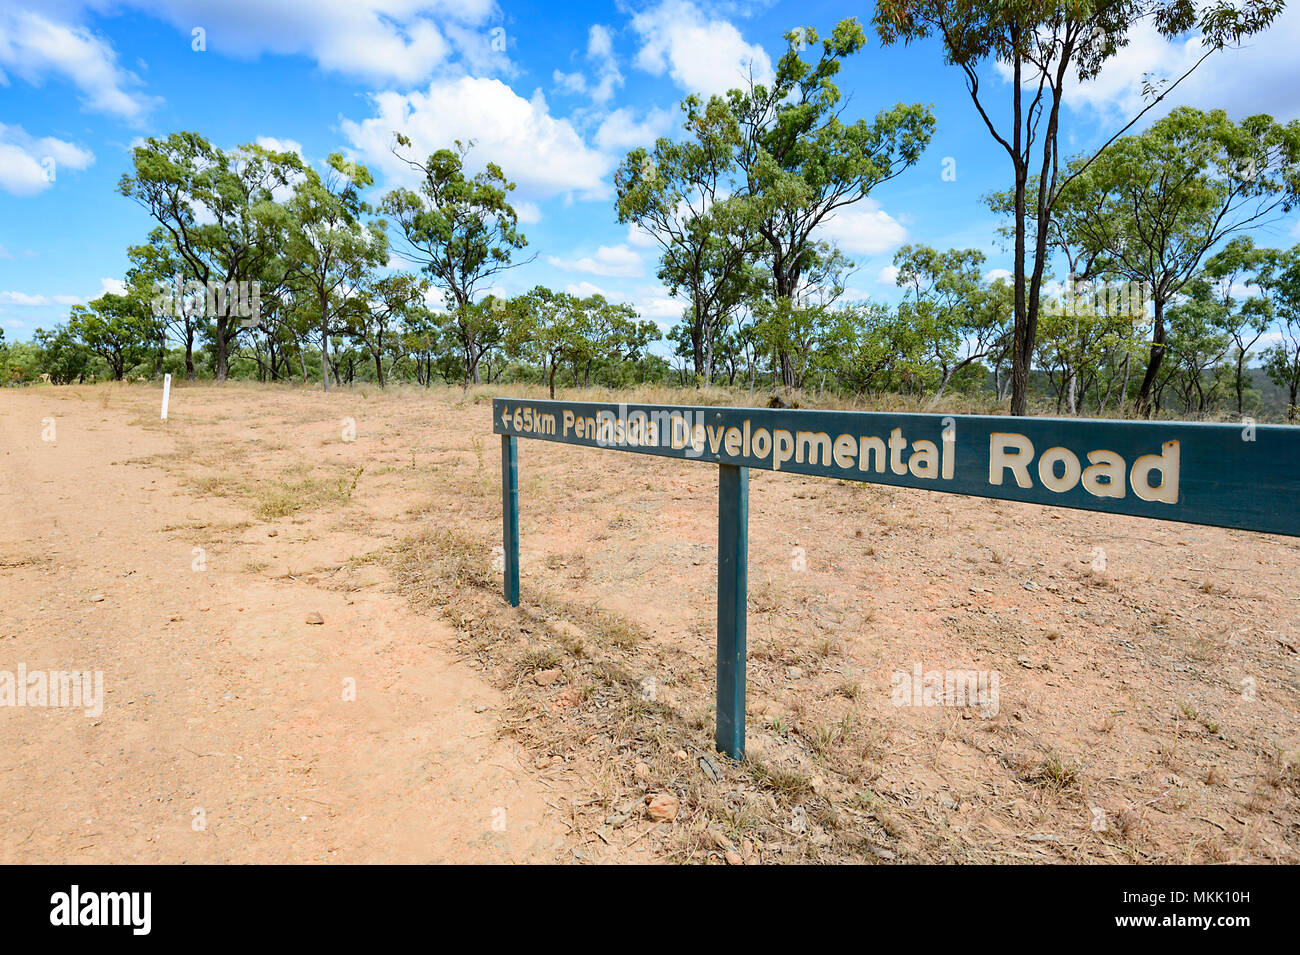 Road sign pointing to the direction of the Peninsula Developmental Road (PDR) on a remote dirt road, Far North Queensland, FNQ, QLD, Australia - Stock Image